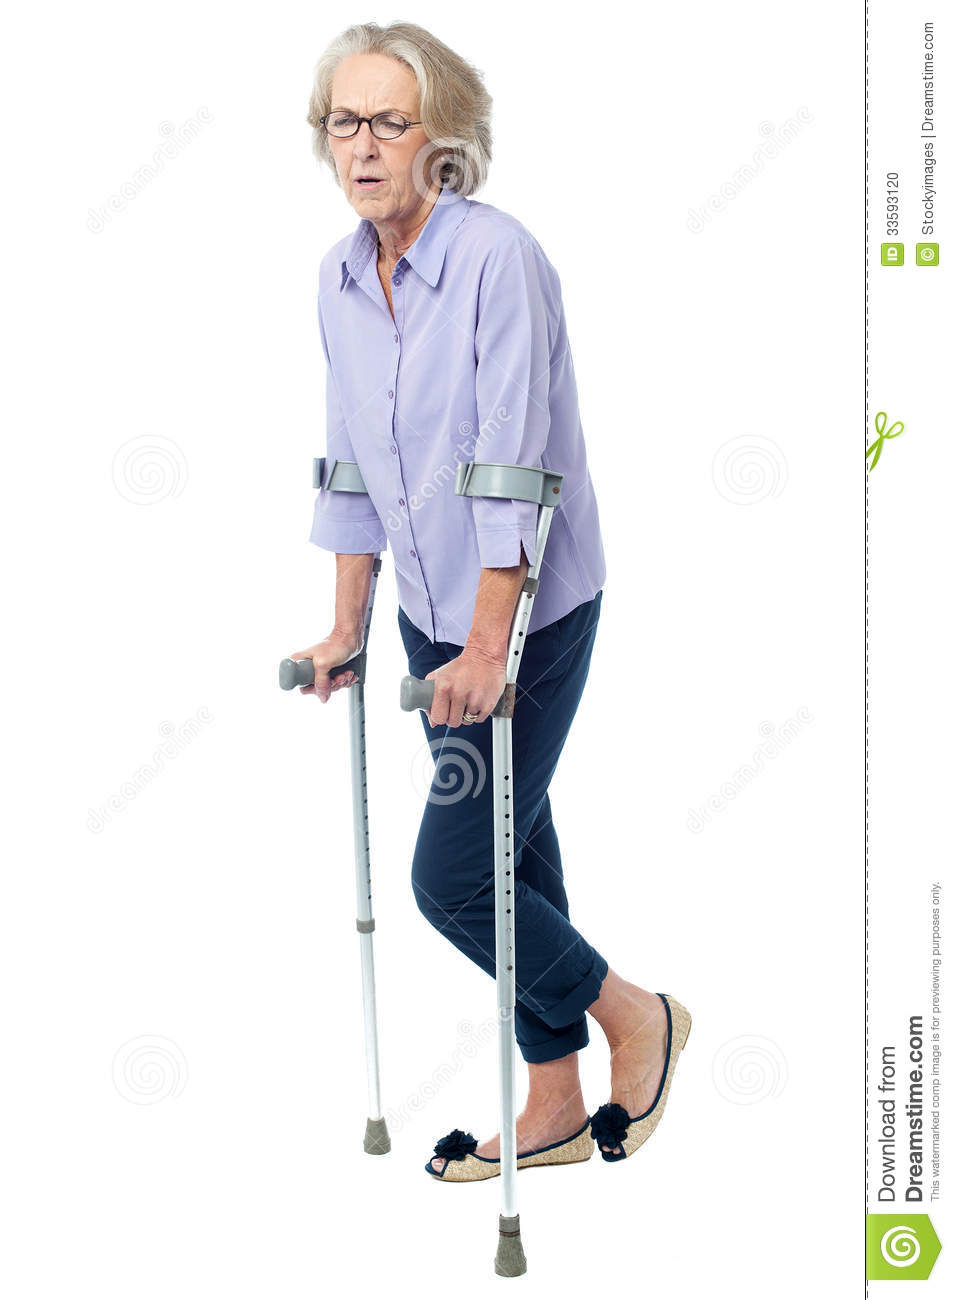 Running Jogging Music Download Aged Woman In Pain Walking With Crutches Stock Photo